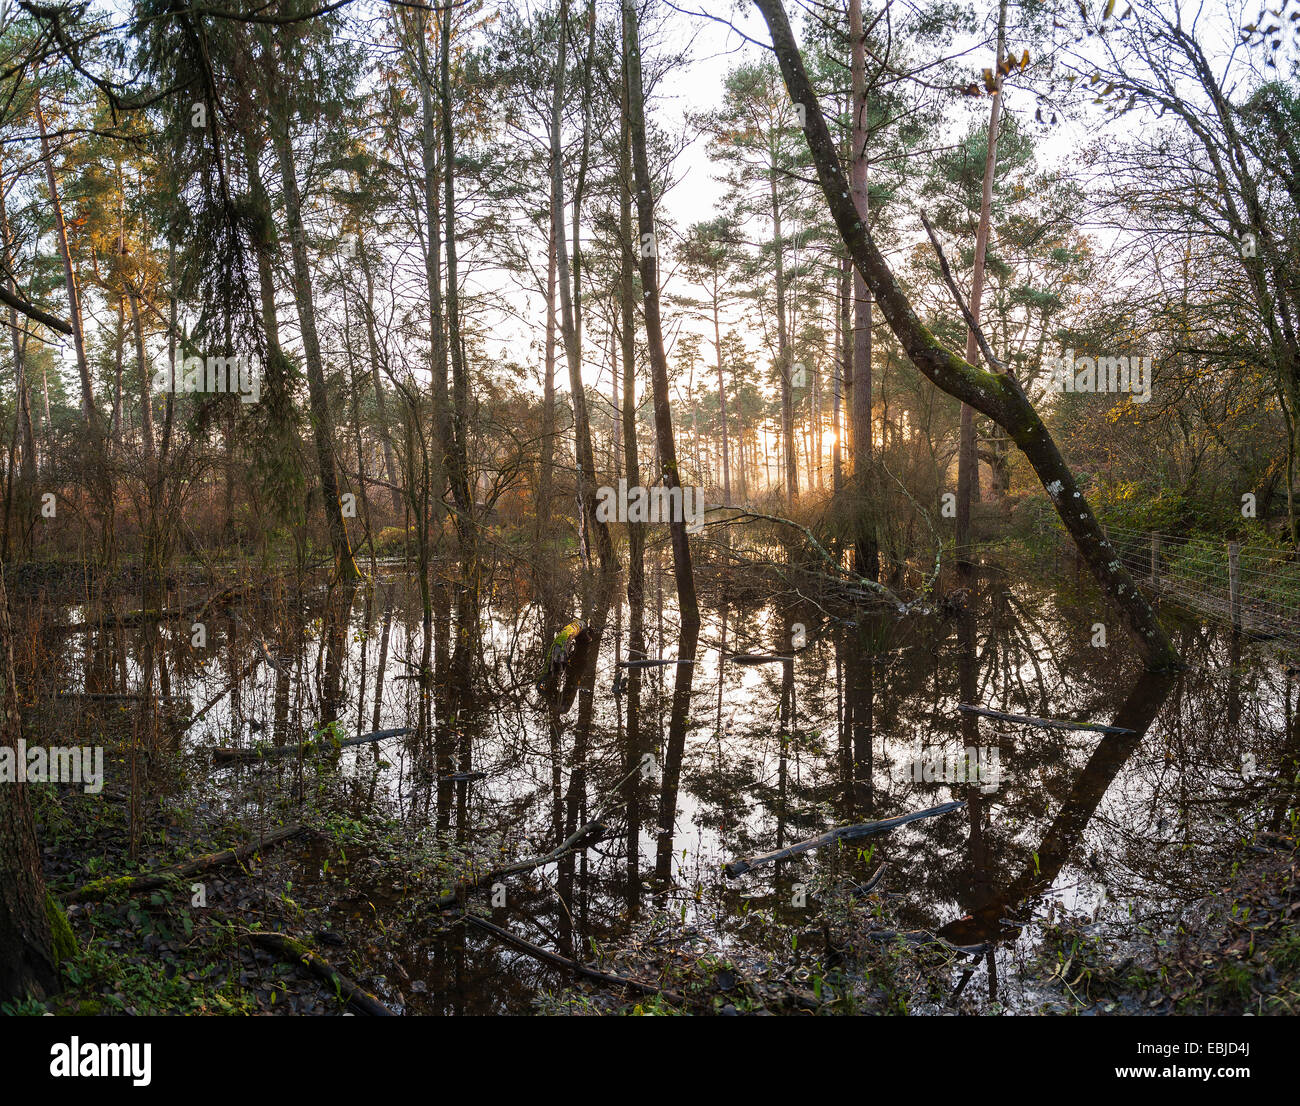 Flooded landscape at Lavington Common, West Sussex, UK - Stock Image